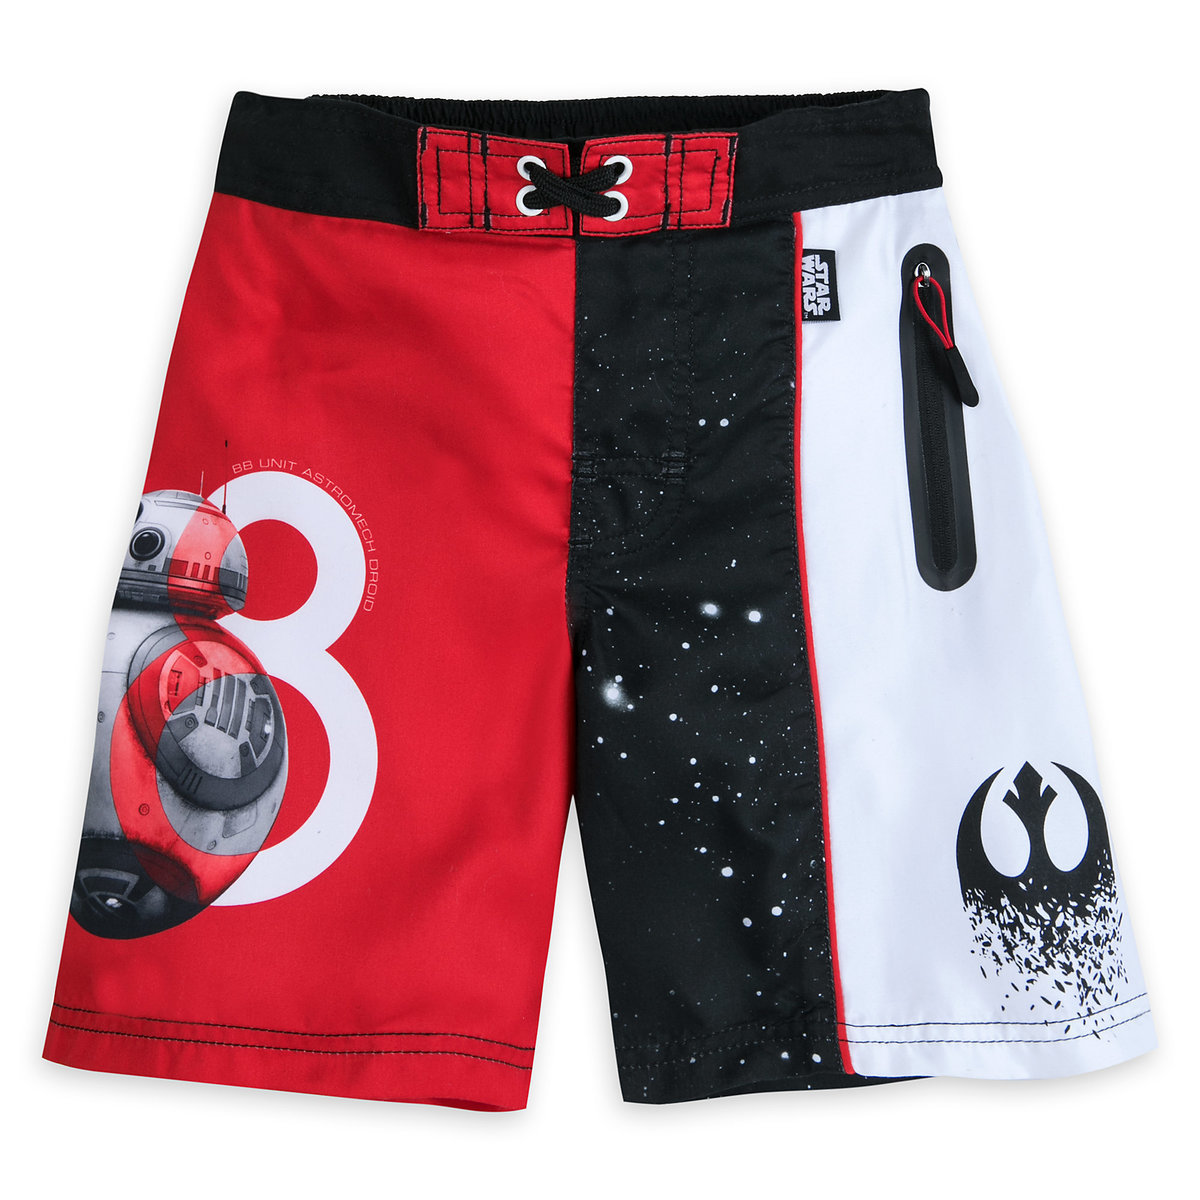 cc86ad1a16 Product Image of Star Wars: The Last Jedi Swim Trunks for Boys # 1